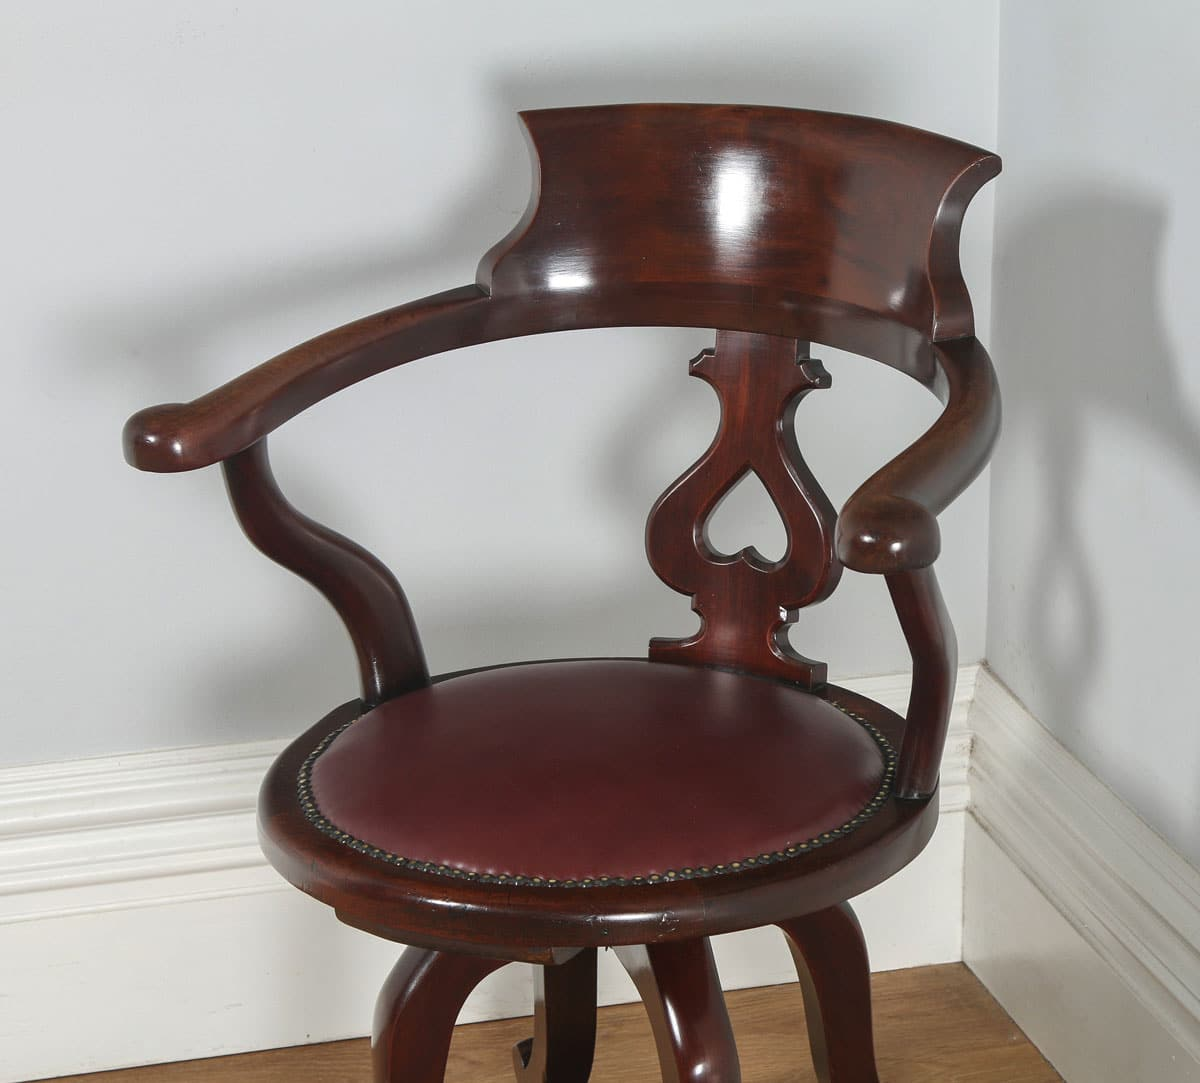 revolving office armchair yellow chair covers for sale antique english victorian mahogany and red leather